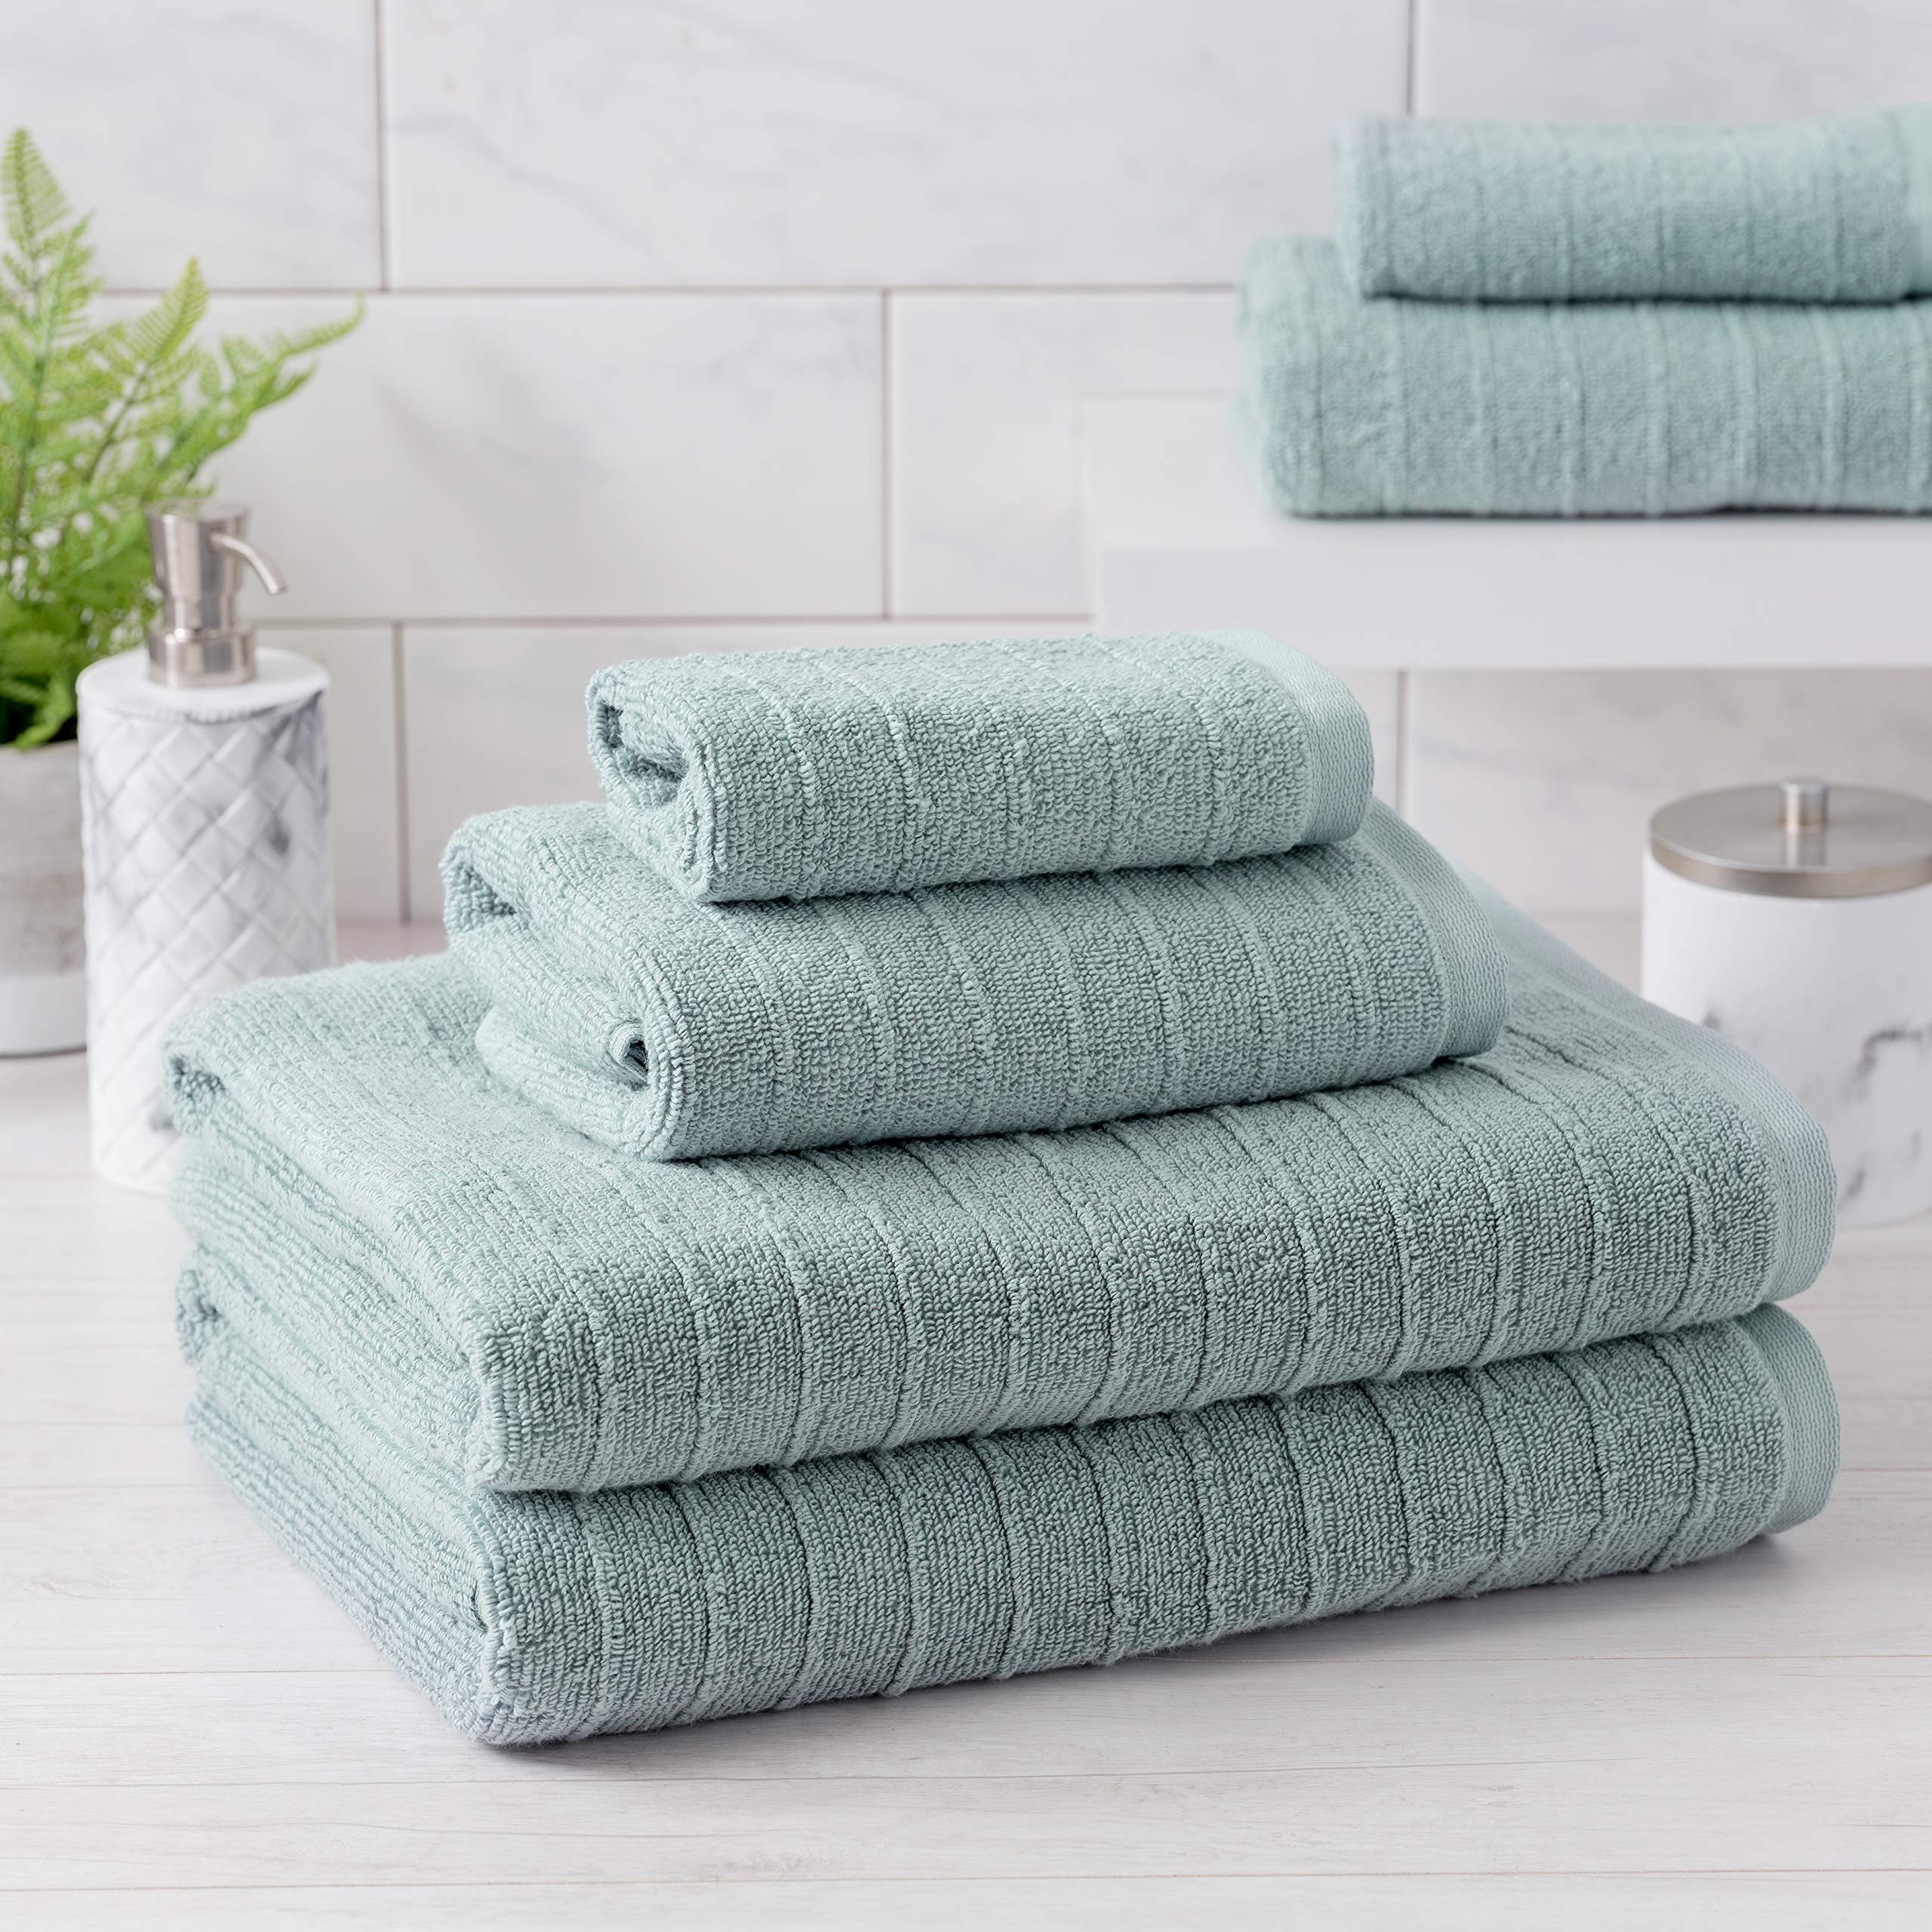 Welhome James 100% Cotton Textured Bath Towel Set of 6 (Mineral) - Super Absorbent - Soft & Luxurious Bathroom Towels - Quick Dry - 2 Bath - 2 Hand - 2 Wash Towels